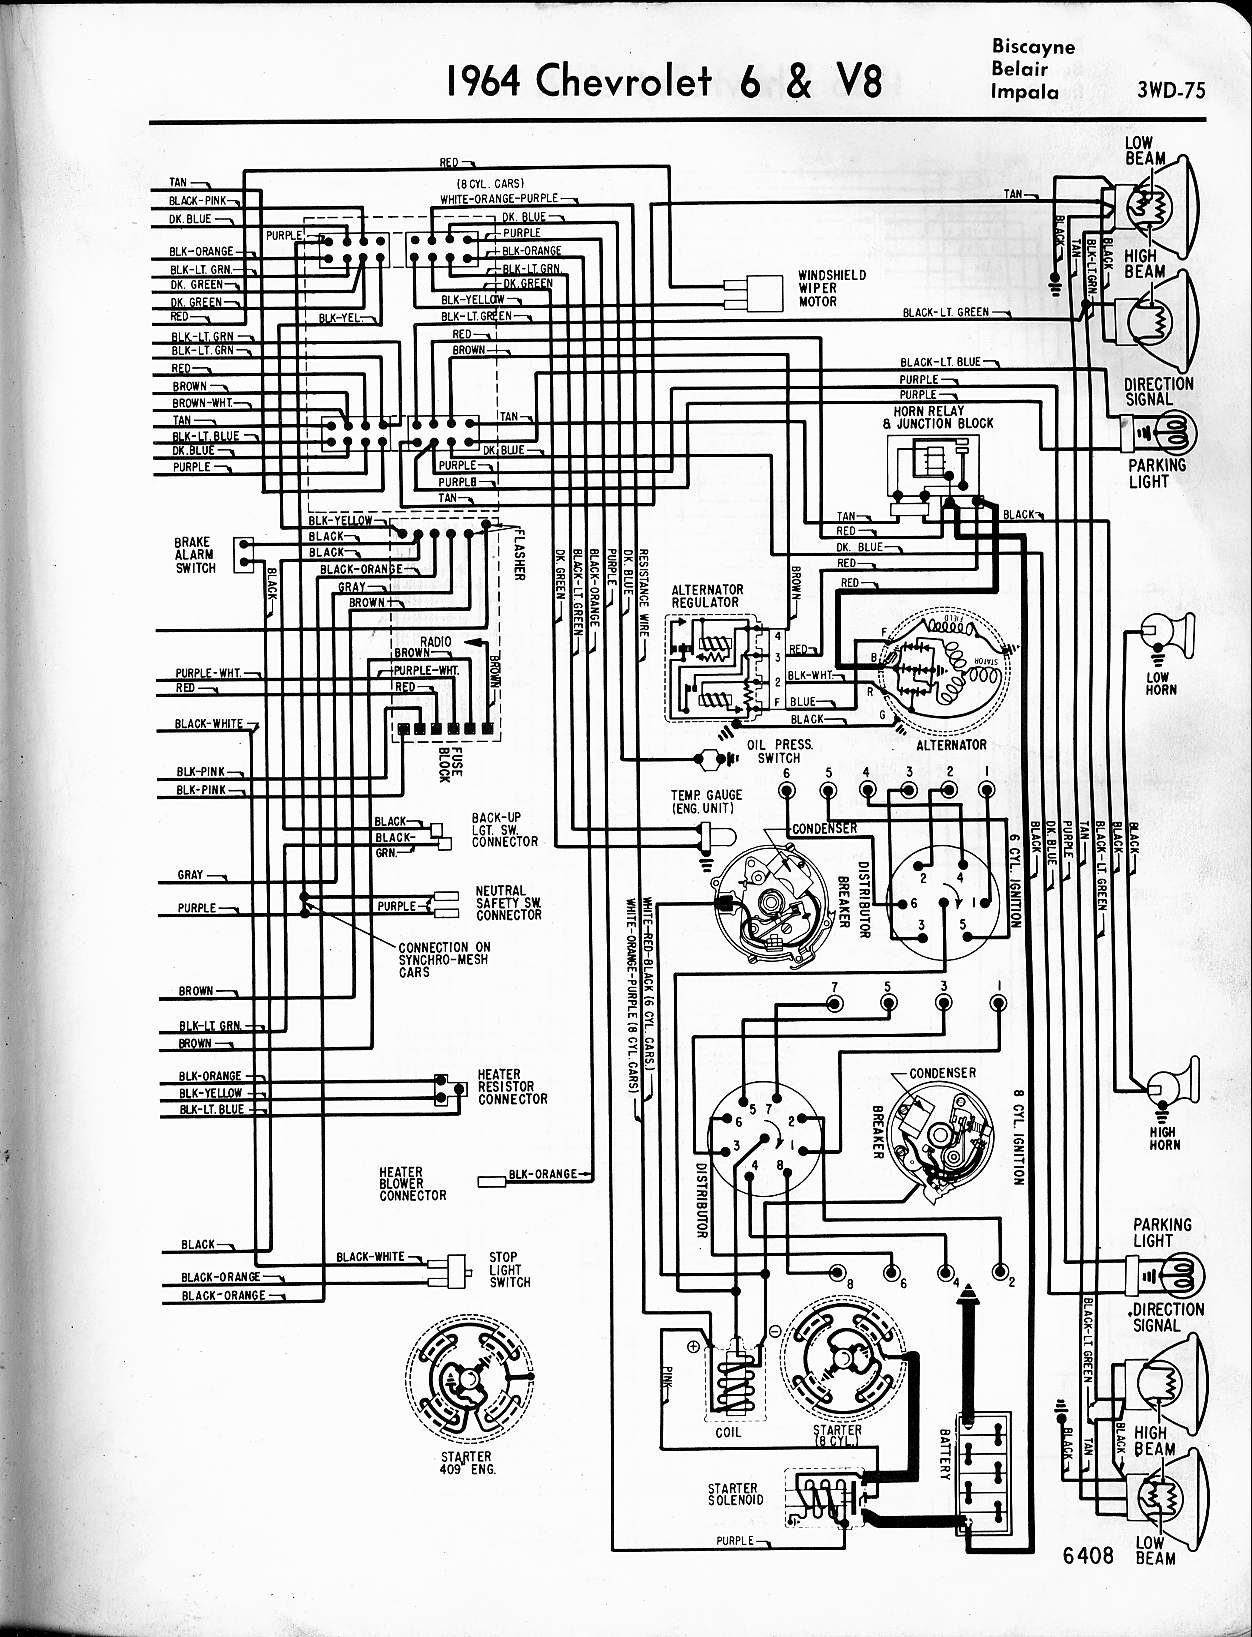 hight resolution of 64 impala wiring diagram wiring diagram todays 57 65 chevy wiring diagrams 67 impala wiring diagram